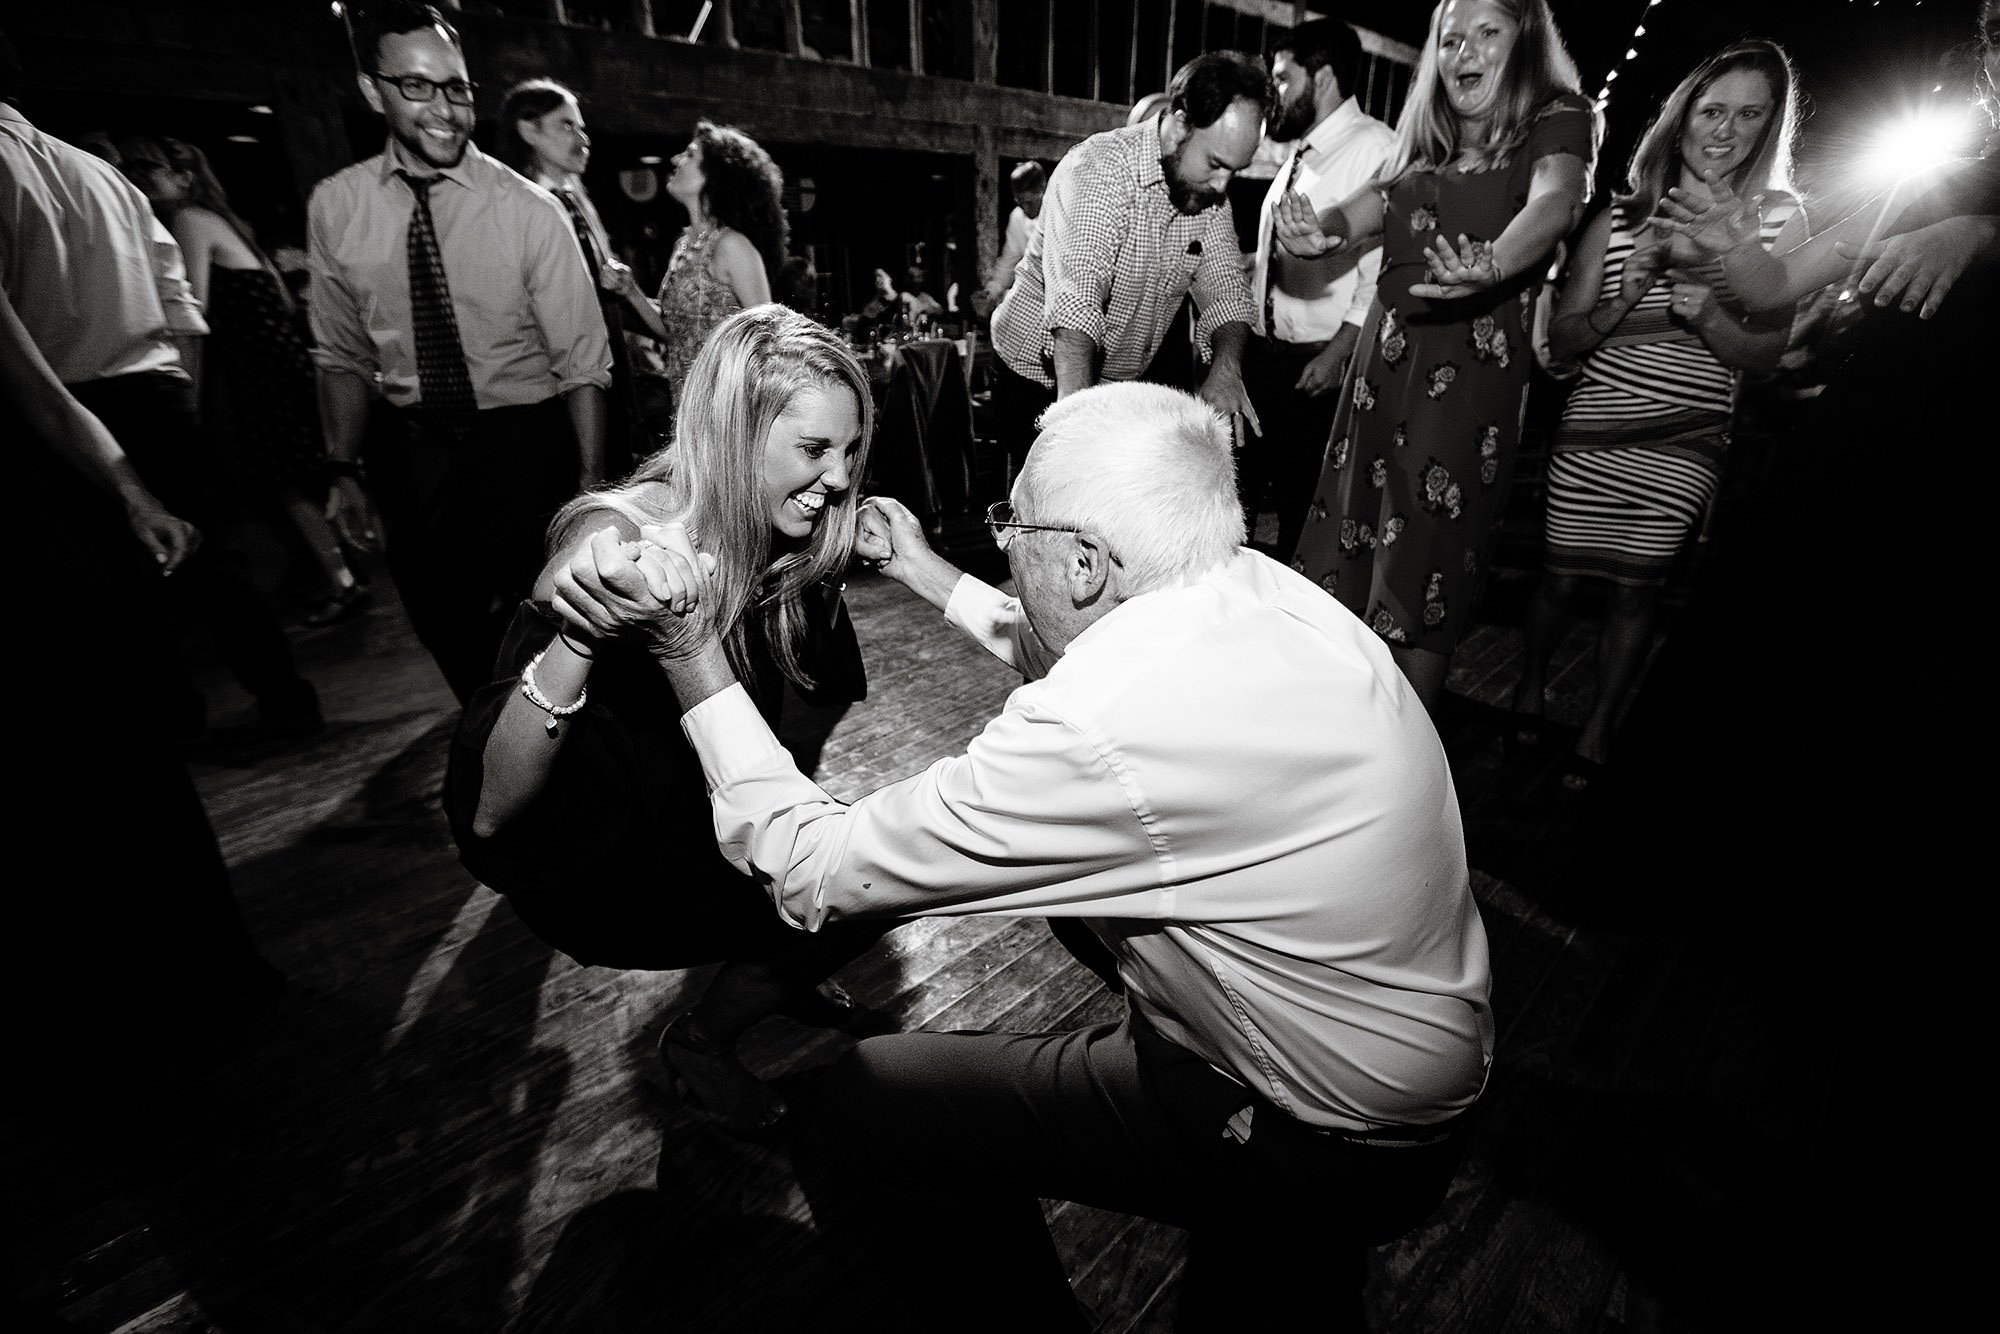 Guests dance in the barn during the wedding reception at Hulbert Outdoor Center.